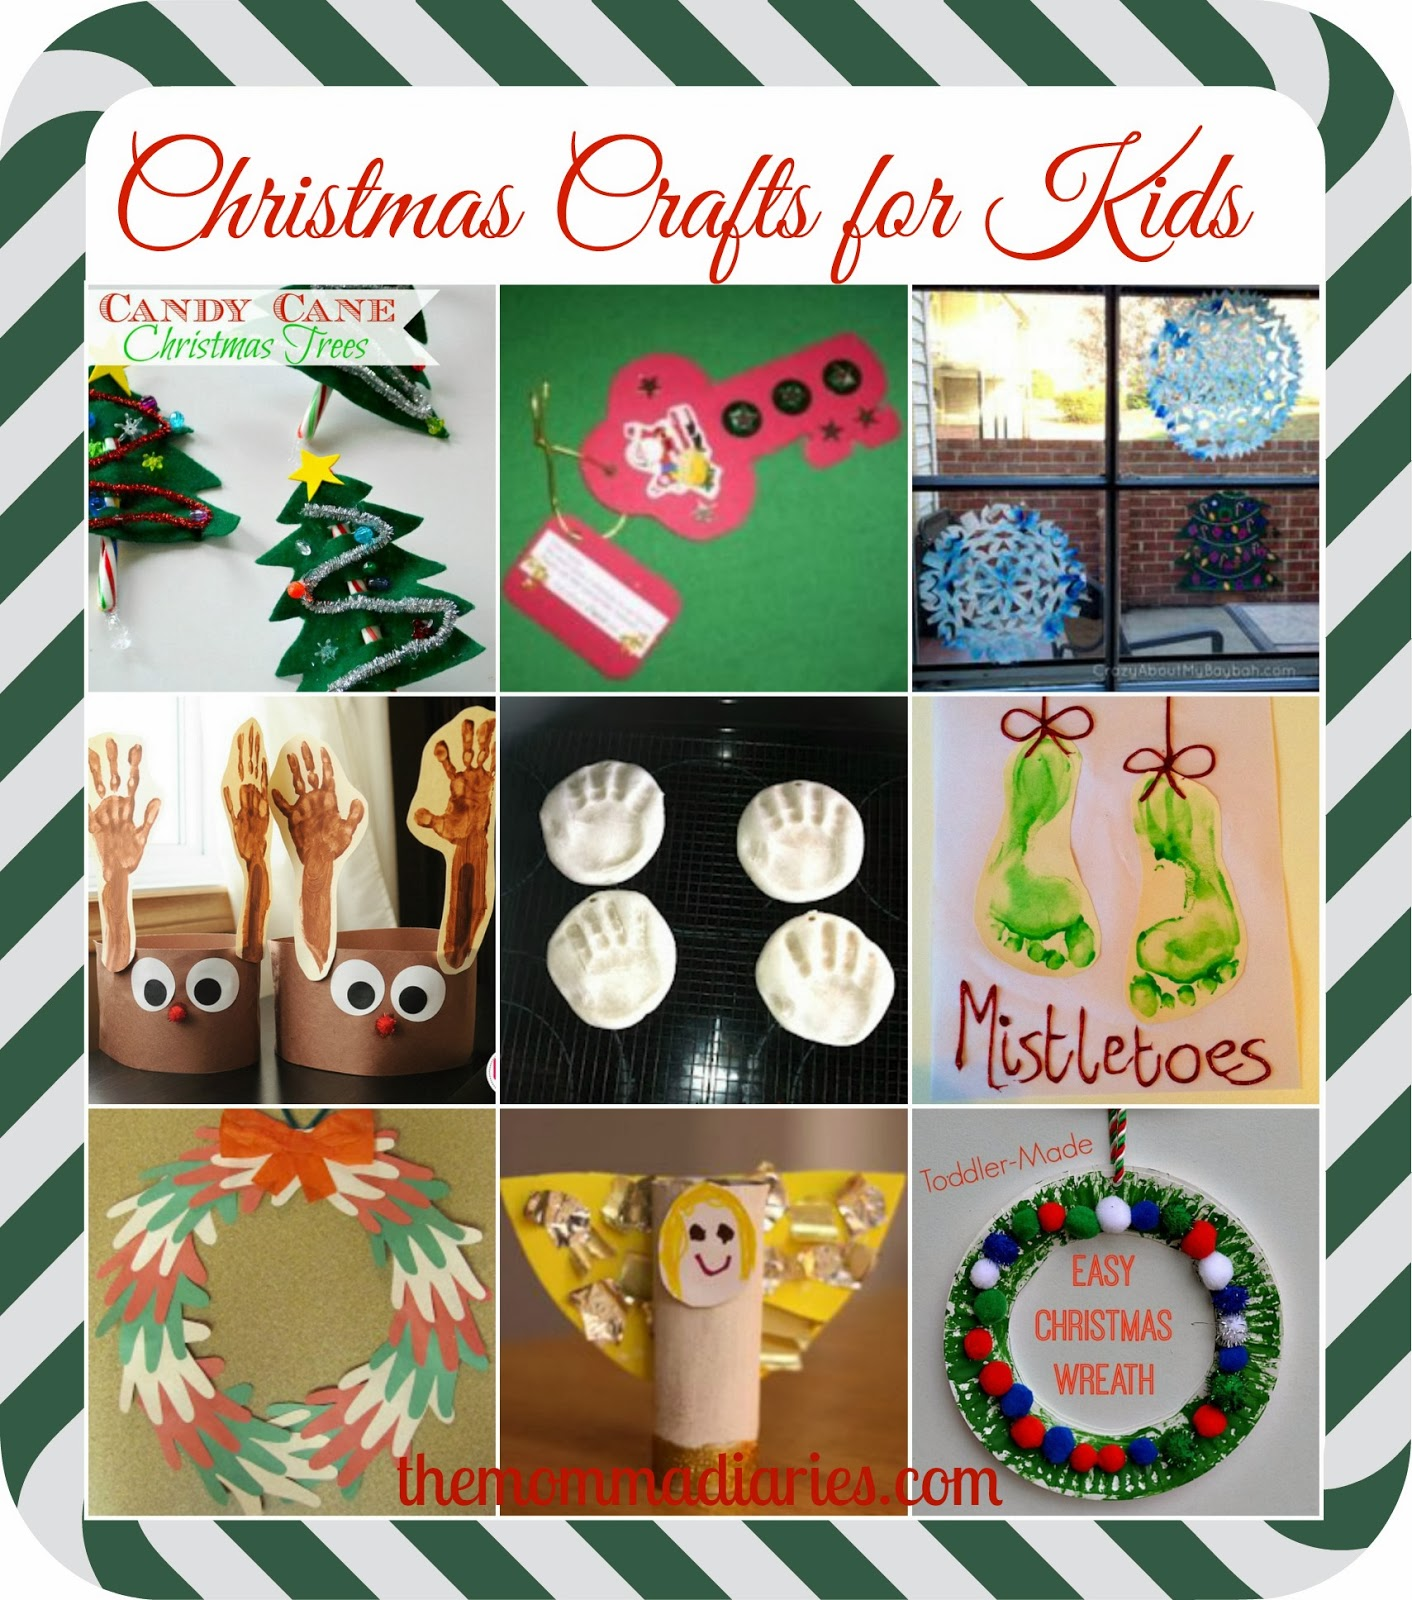 ... of my favorite Christmas crafts for kids, via Pinterest {of course